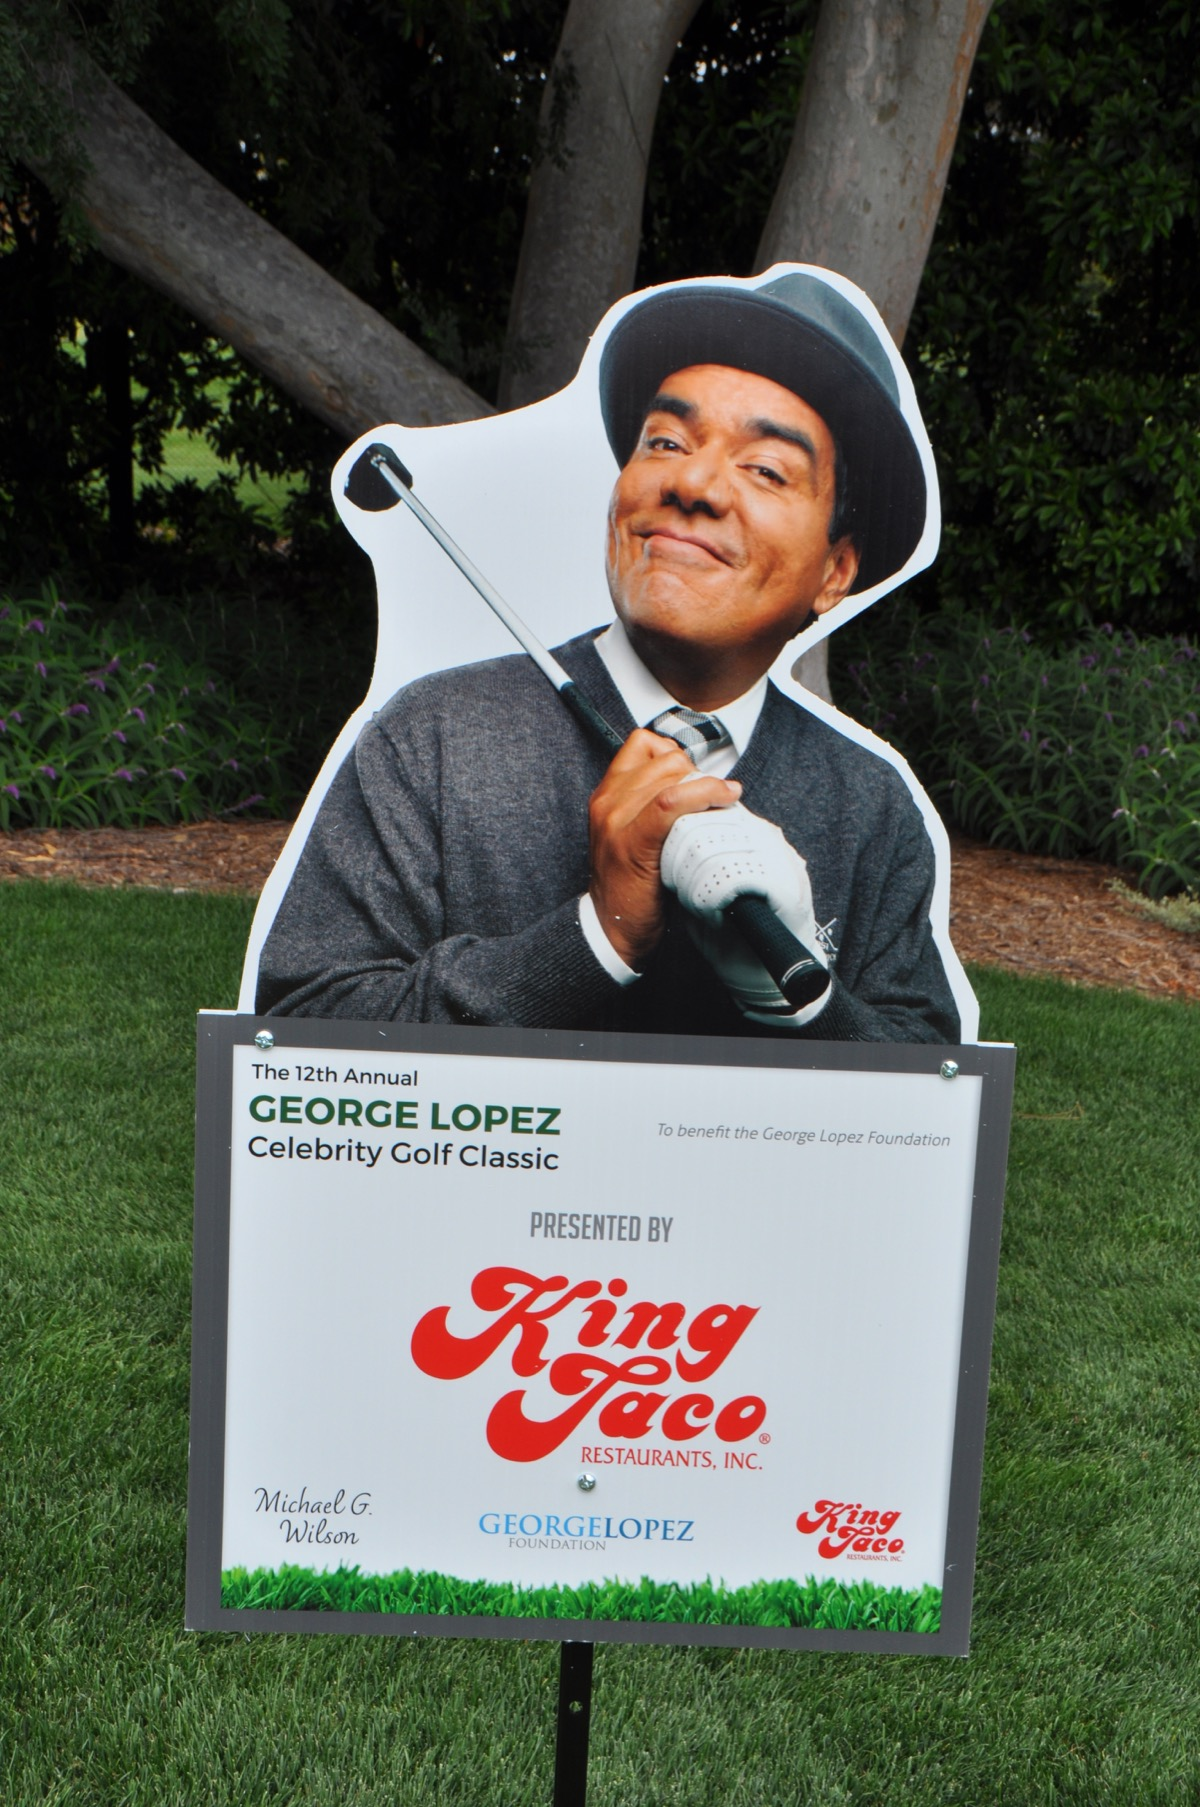 12th Annual George Lopez Celebrity Golf Classic Photos - 85.jpg